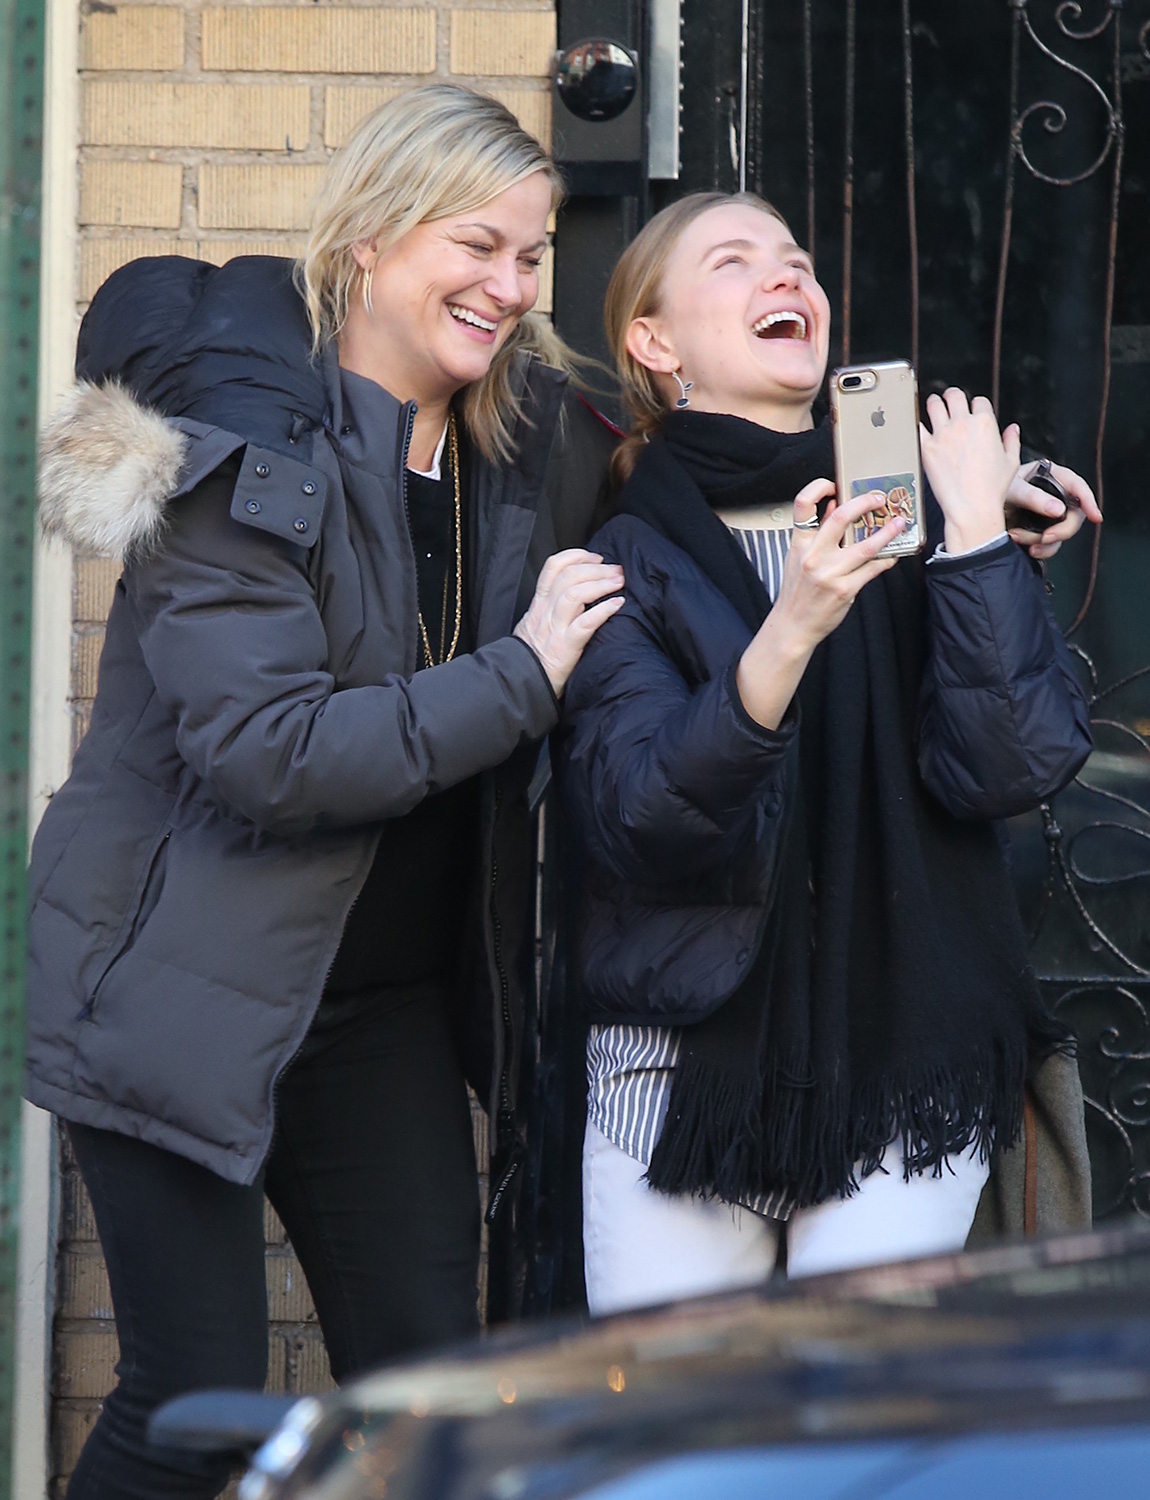 Amy Poehler meeting a friend for lunch in the West Village and then taking a selfie afterwards